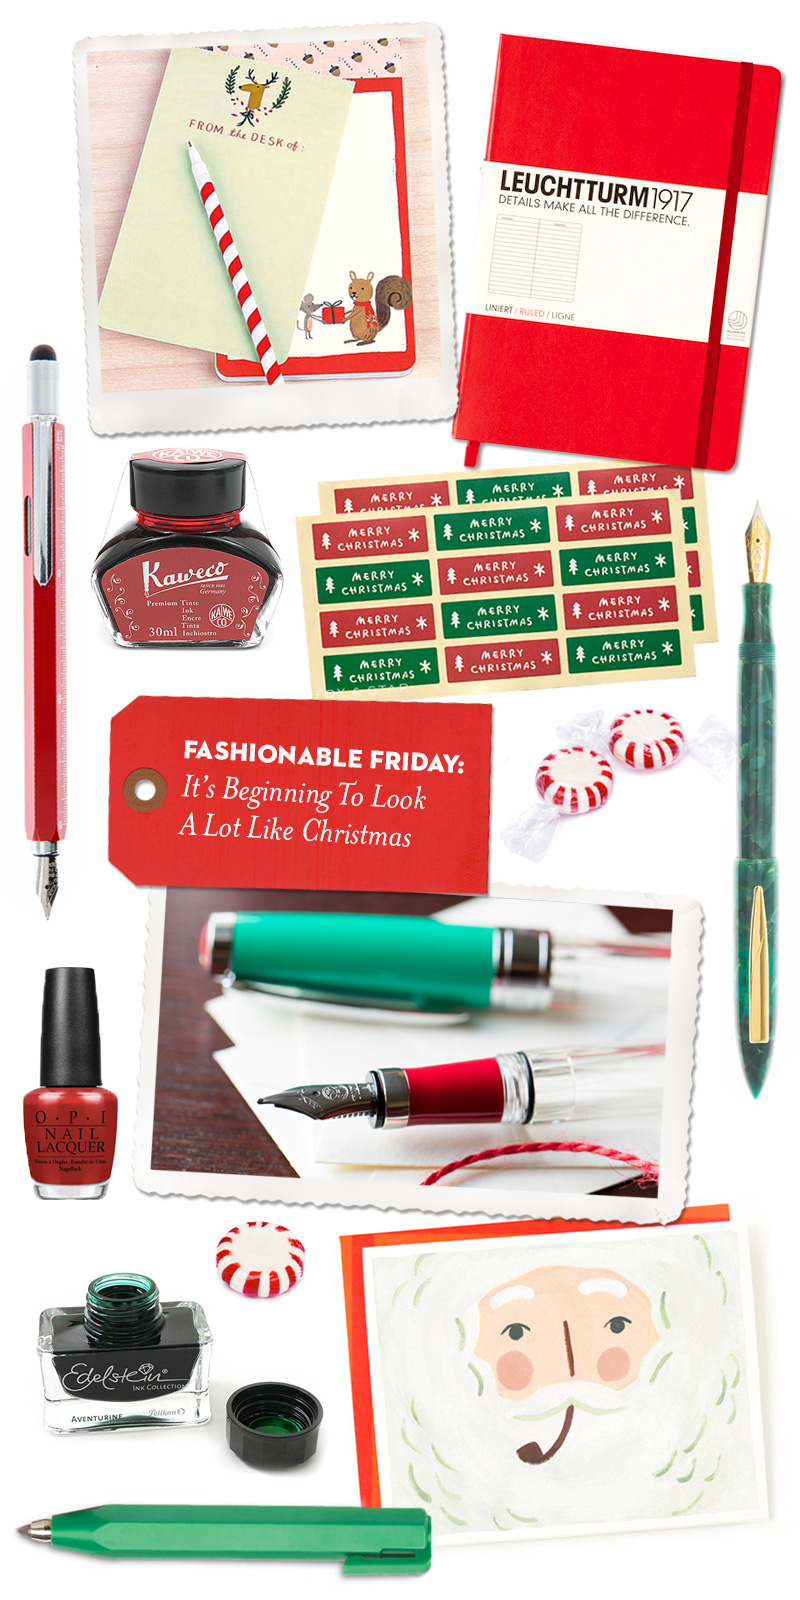 Fashionable Friday: Christmas 2014